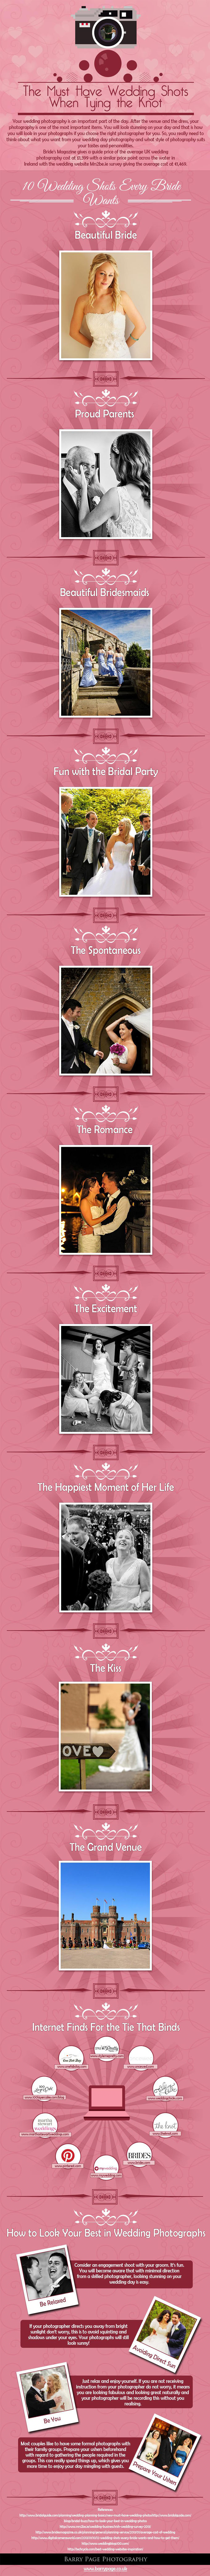 The Must Have Wedding Shots, When Tying the Knot- A Complete Infographic